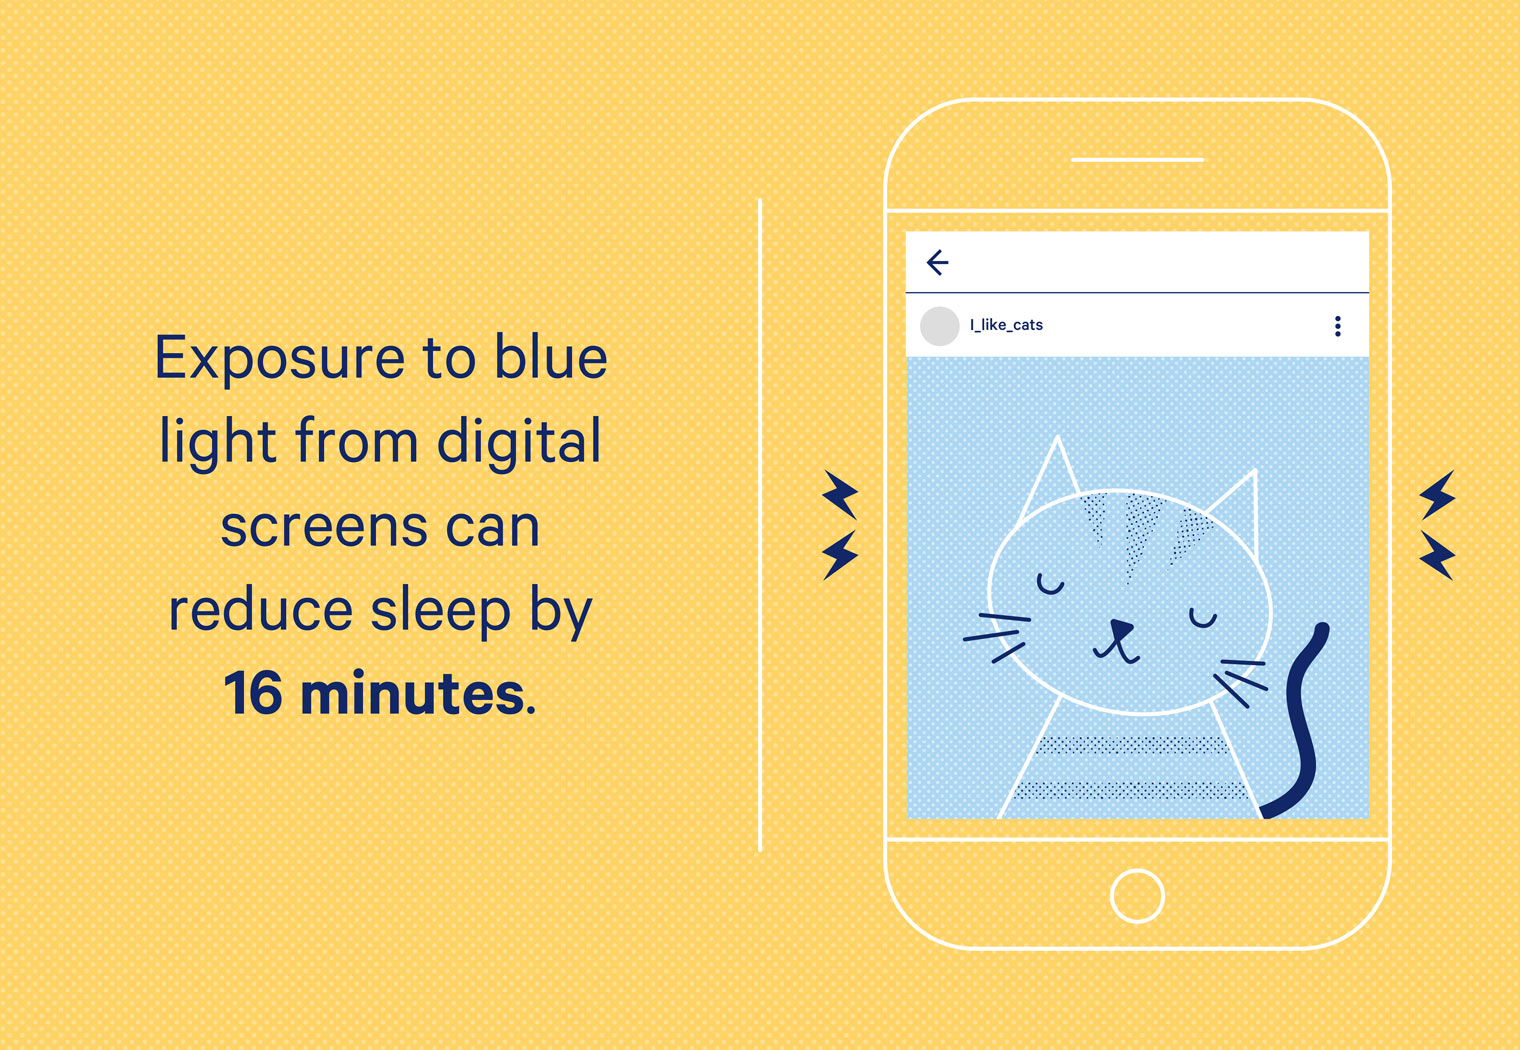 Blue light emitted from digital screens and mobile devices can cut sleep by 16 minutes.